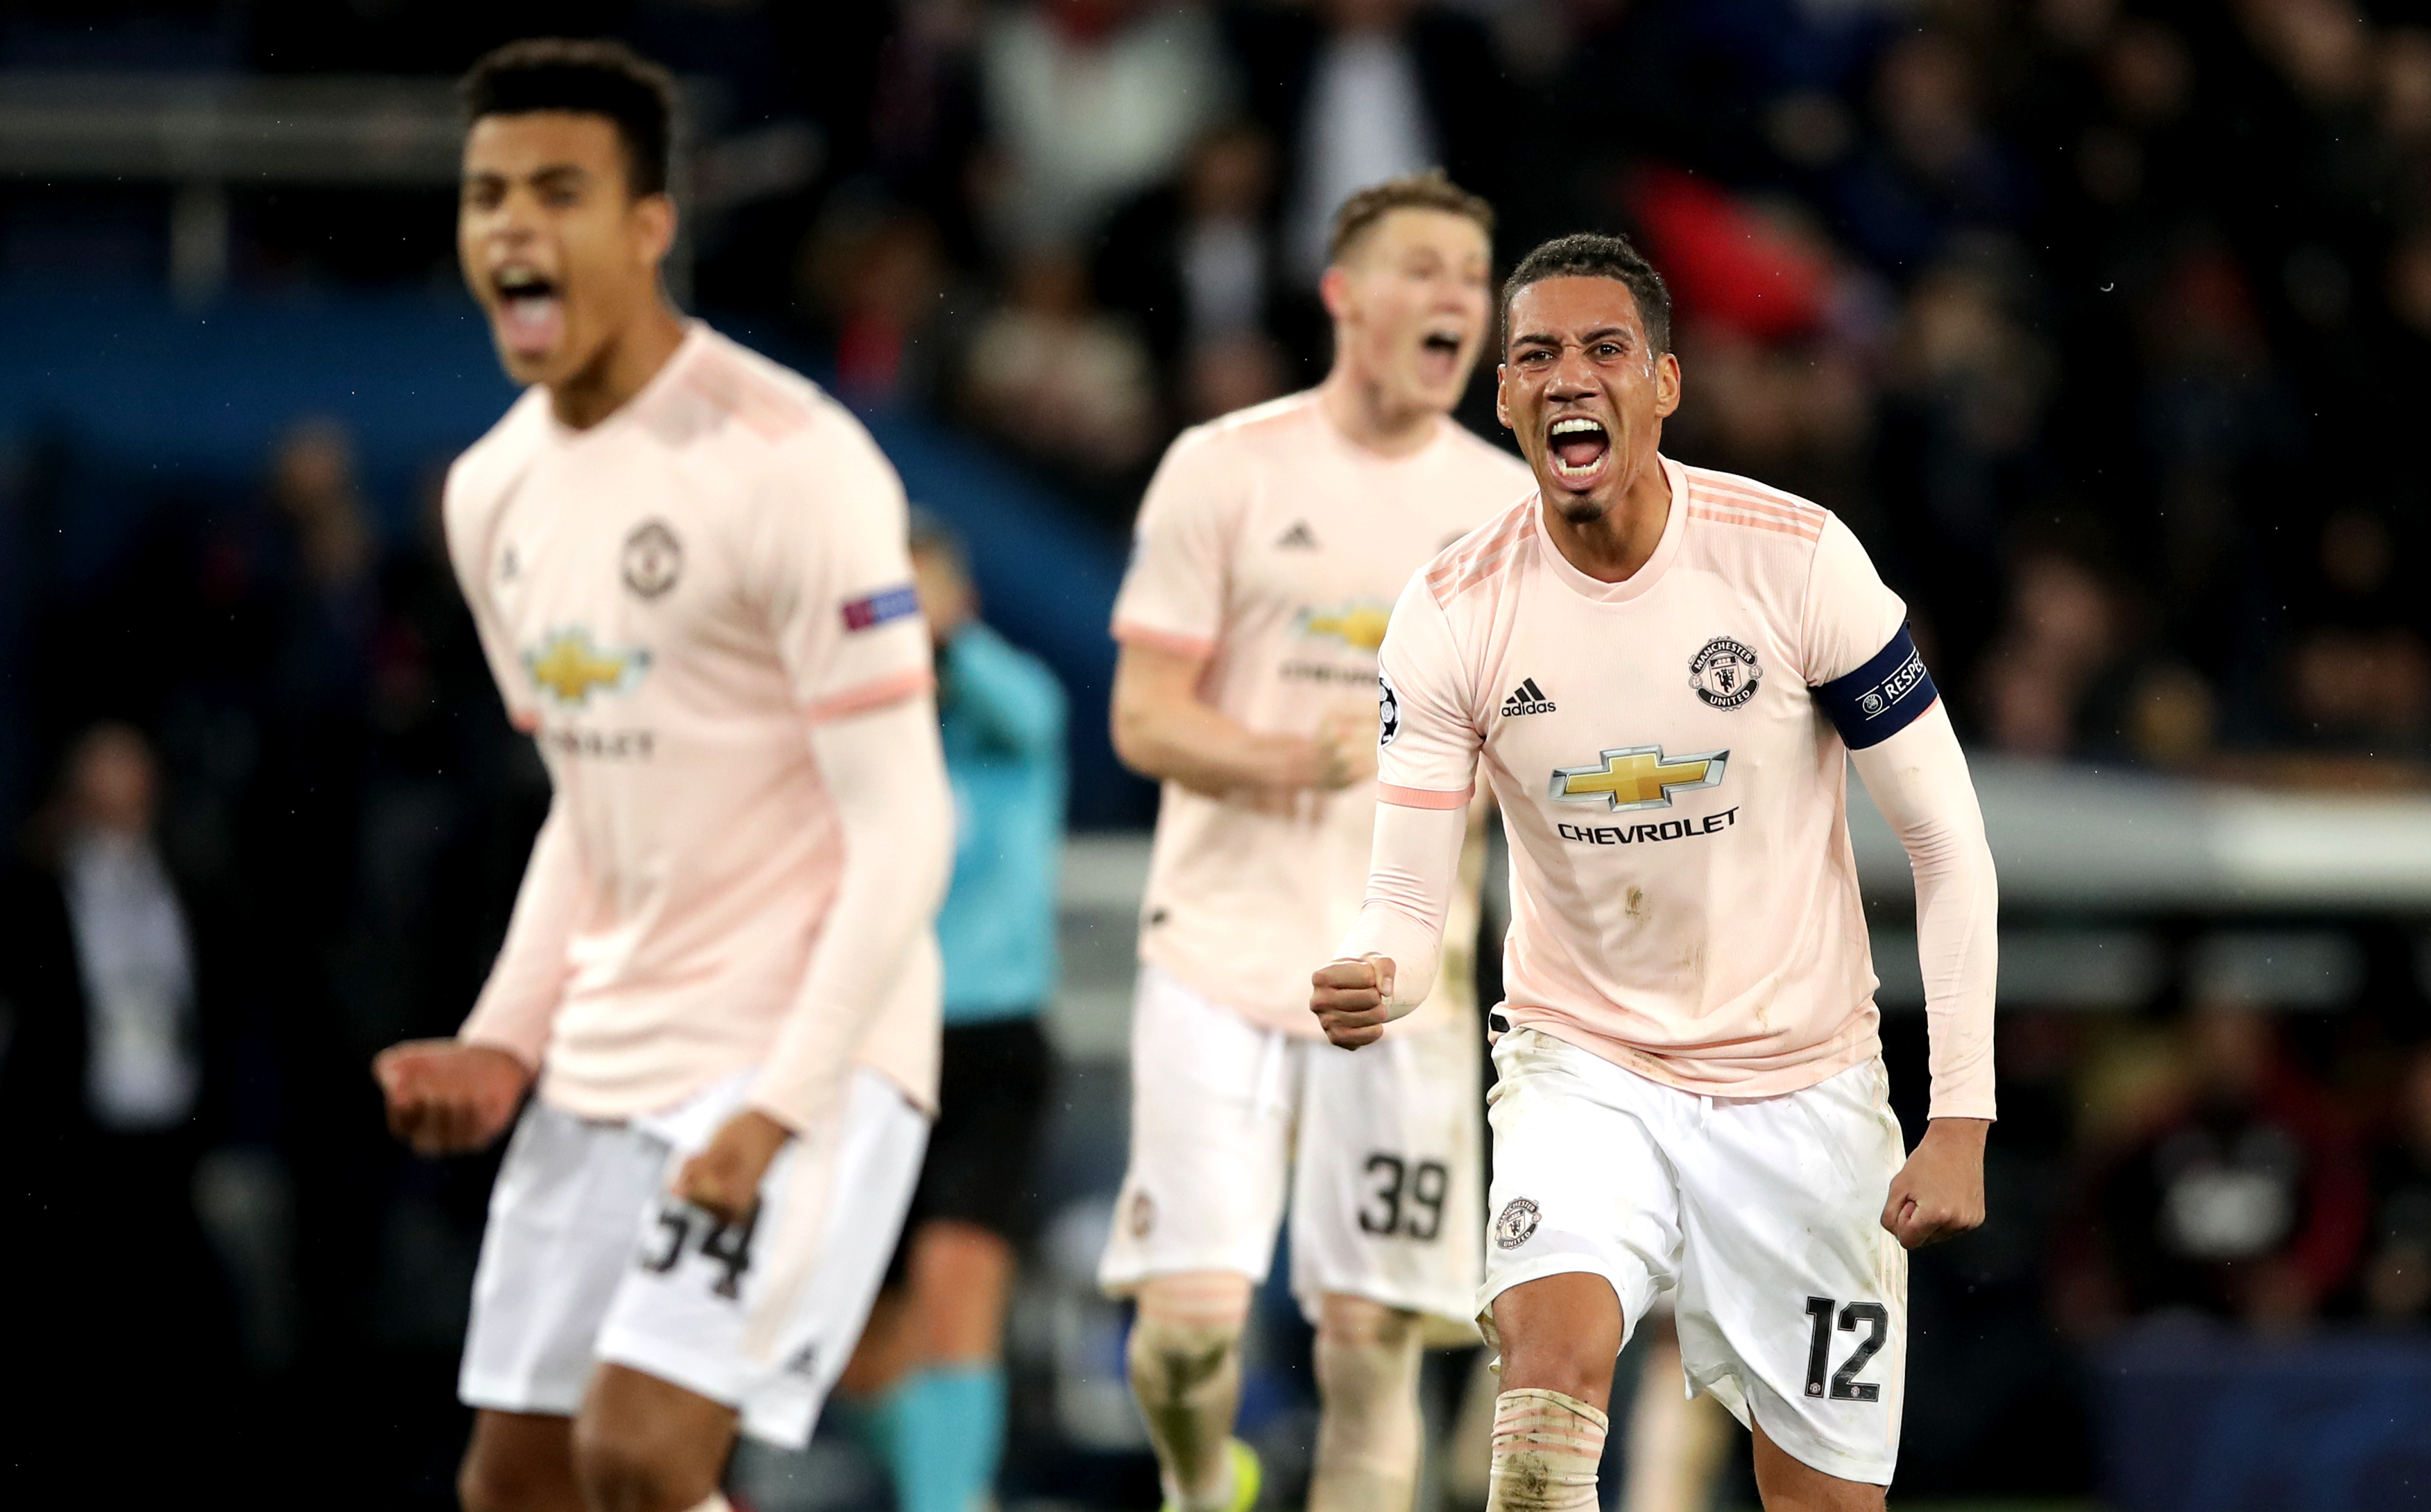 Chris Smalling has been much improved under Ole Gunnar Solskjaer. Image: PA Images